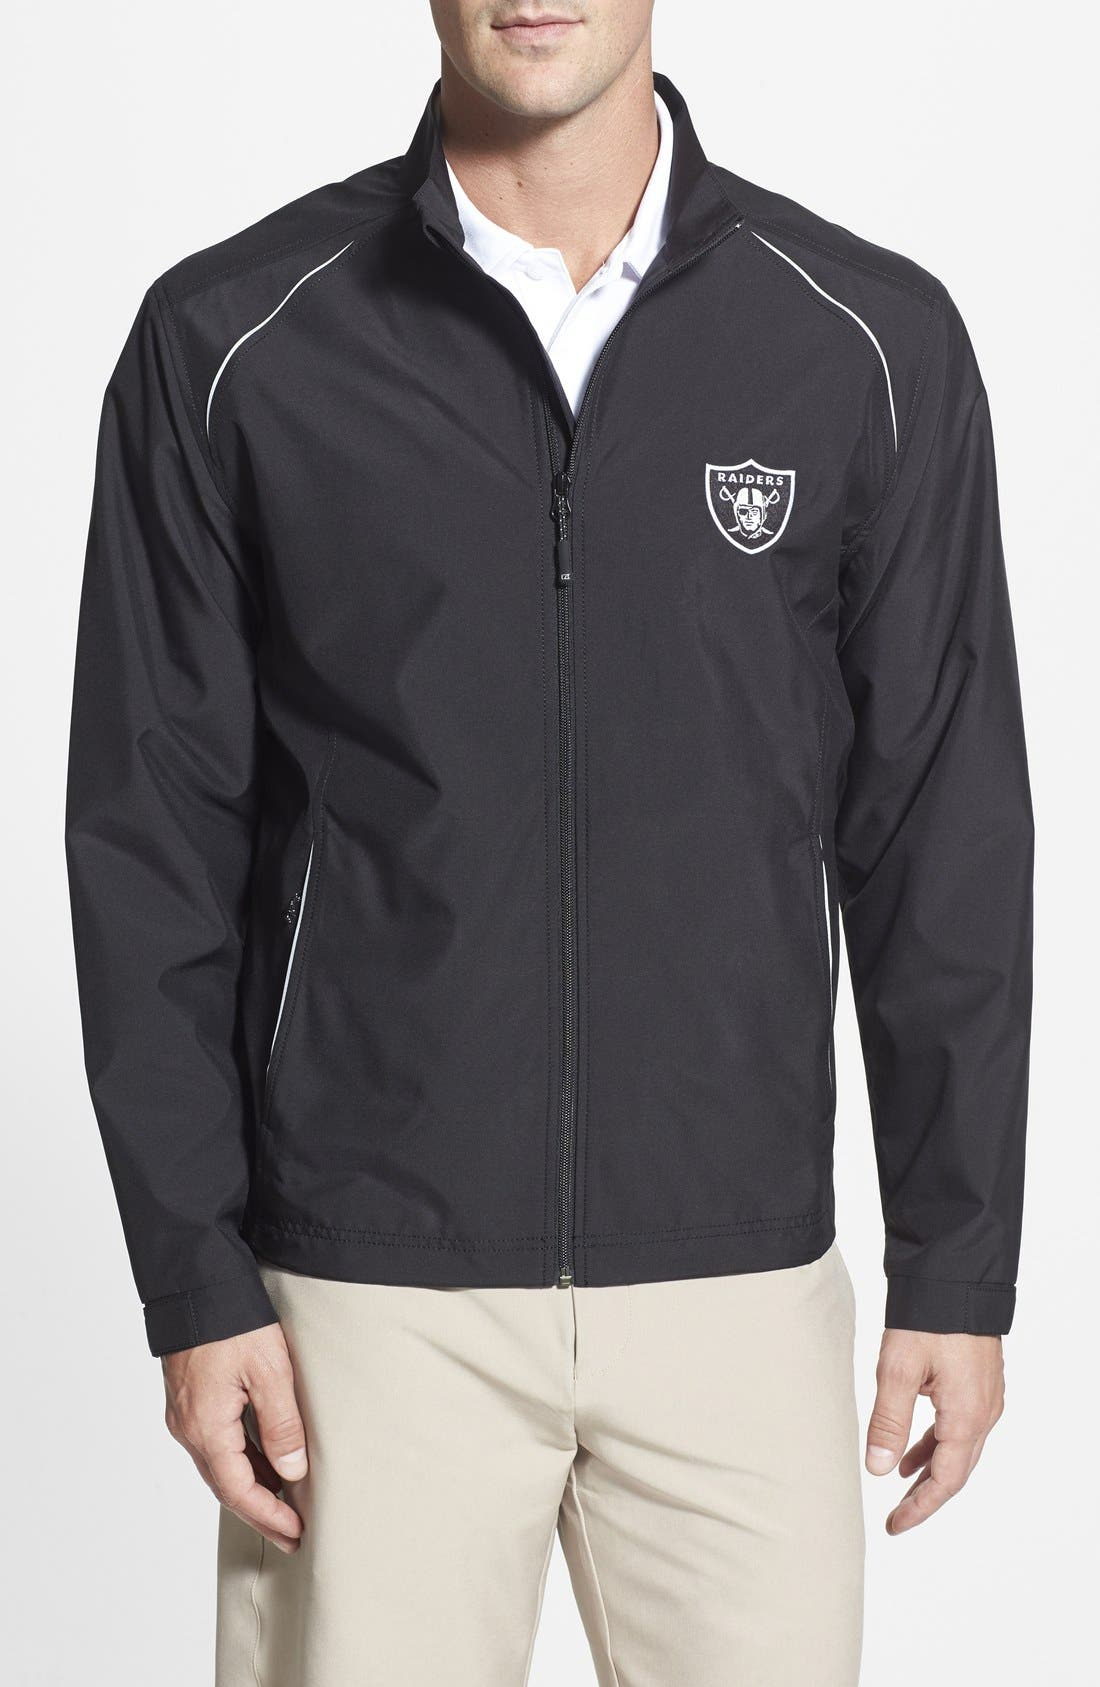 Alternate Image 1 Selected - Cutter & Buck Oakland Raiders - Beacon WeatherTec Wind & Water Resistant Jacket